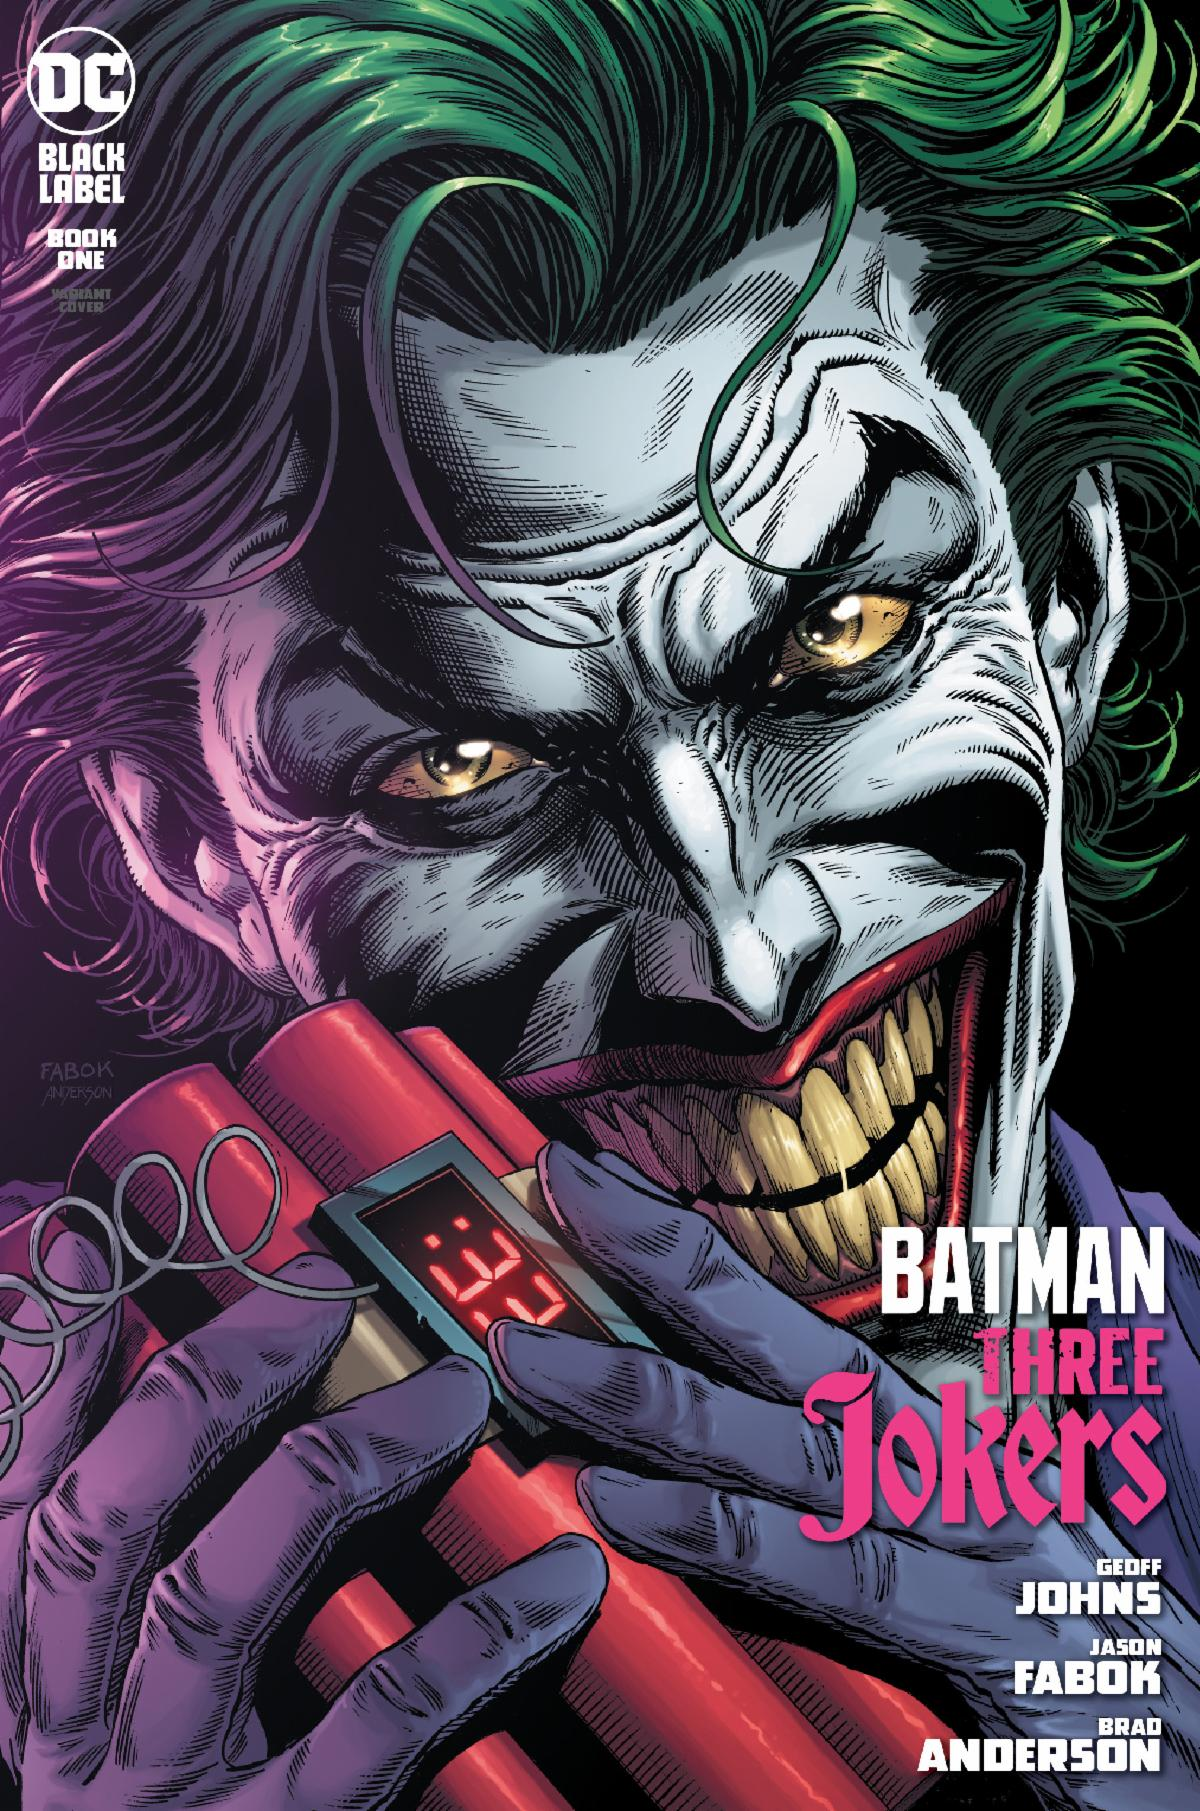 Batman Three Jokers 1 Joker Bomb Premium Variant Cover C Find gifs with the latest and newest hashtags! batman three jokers 1 joker bomb premium variant cover c